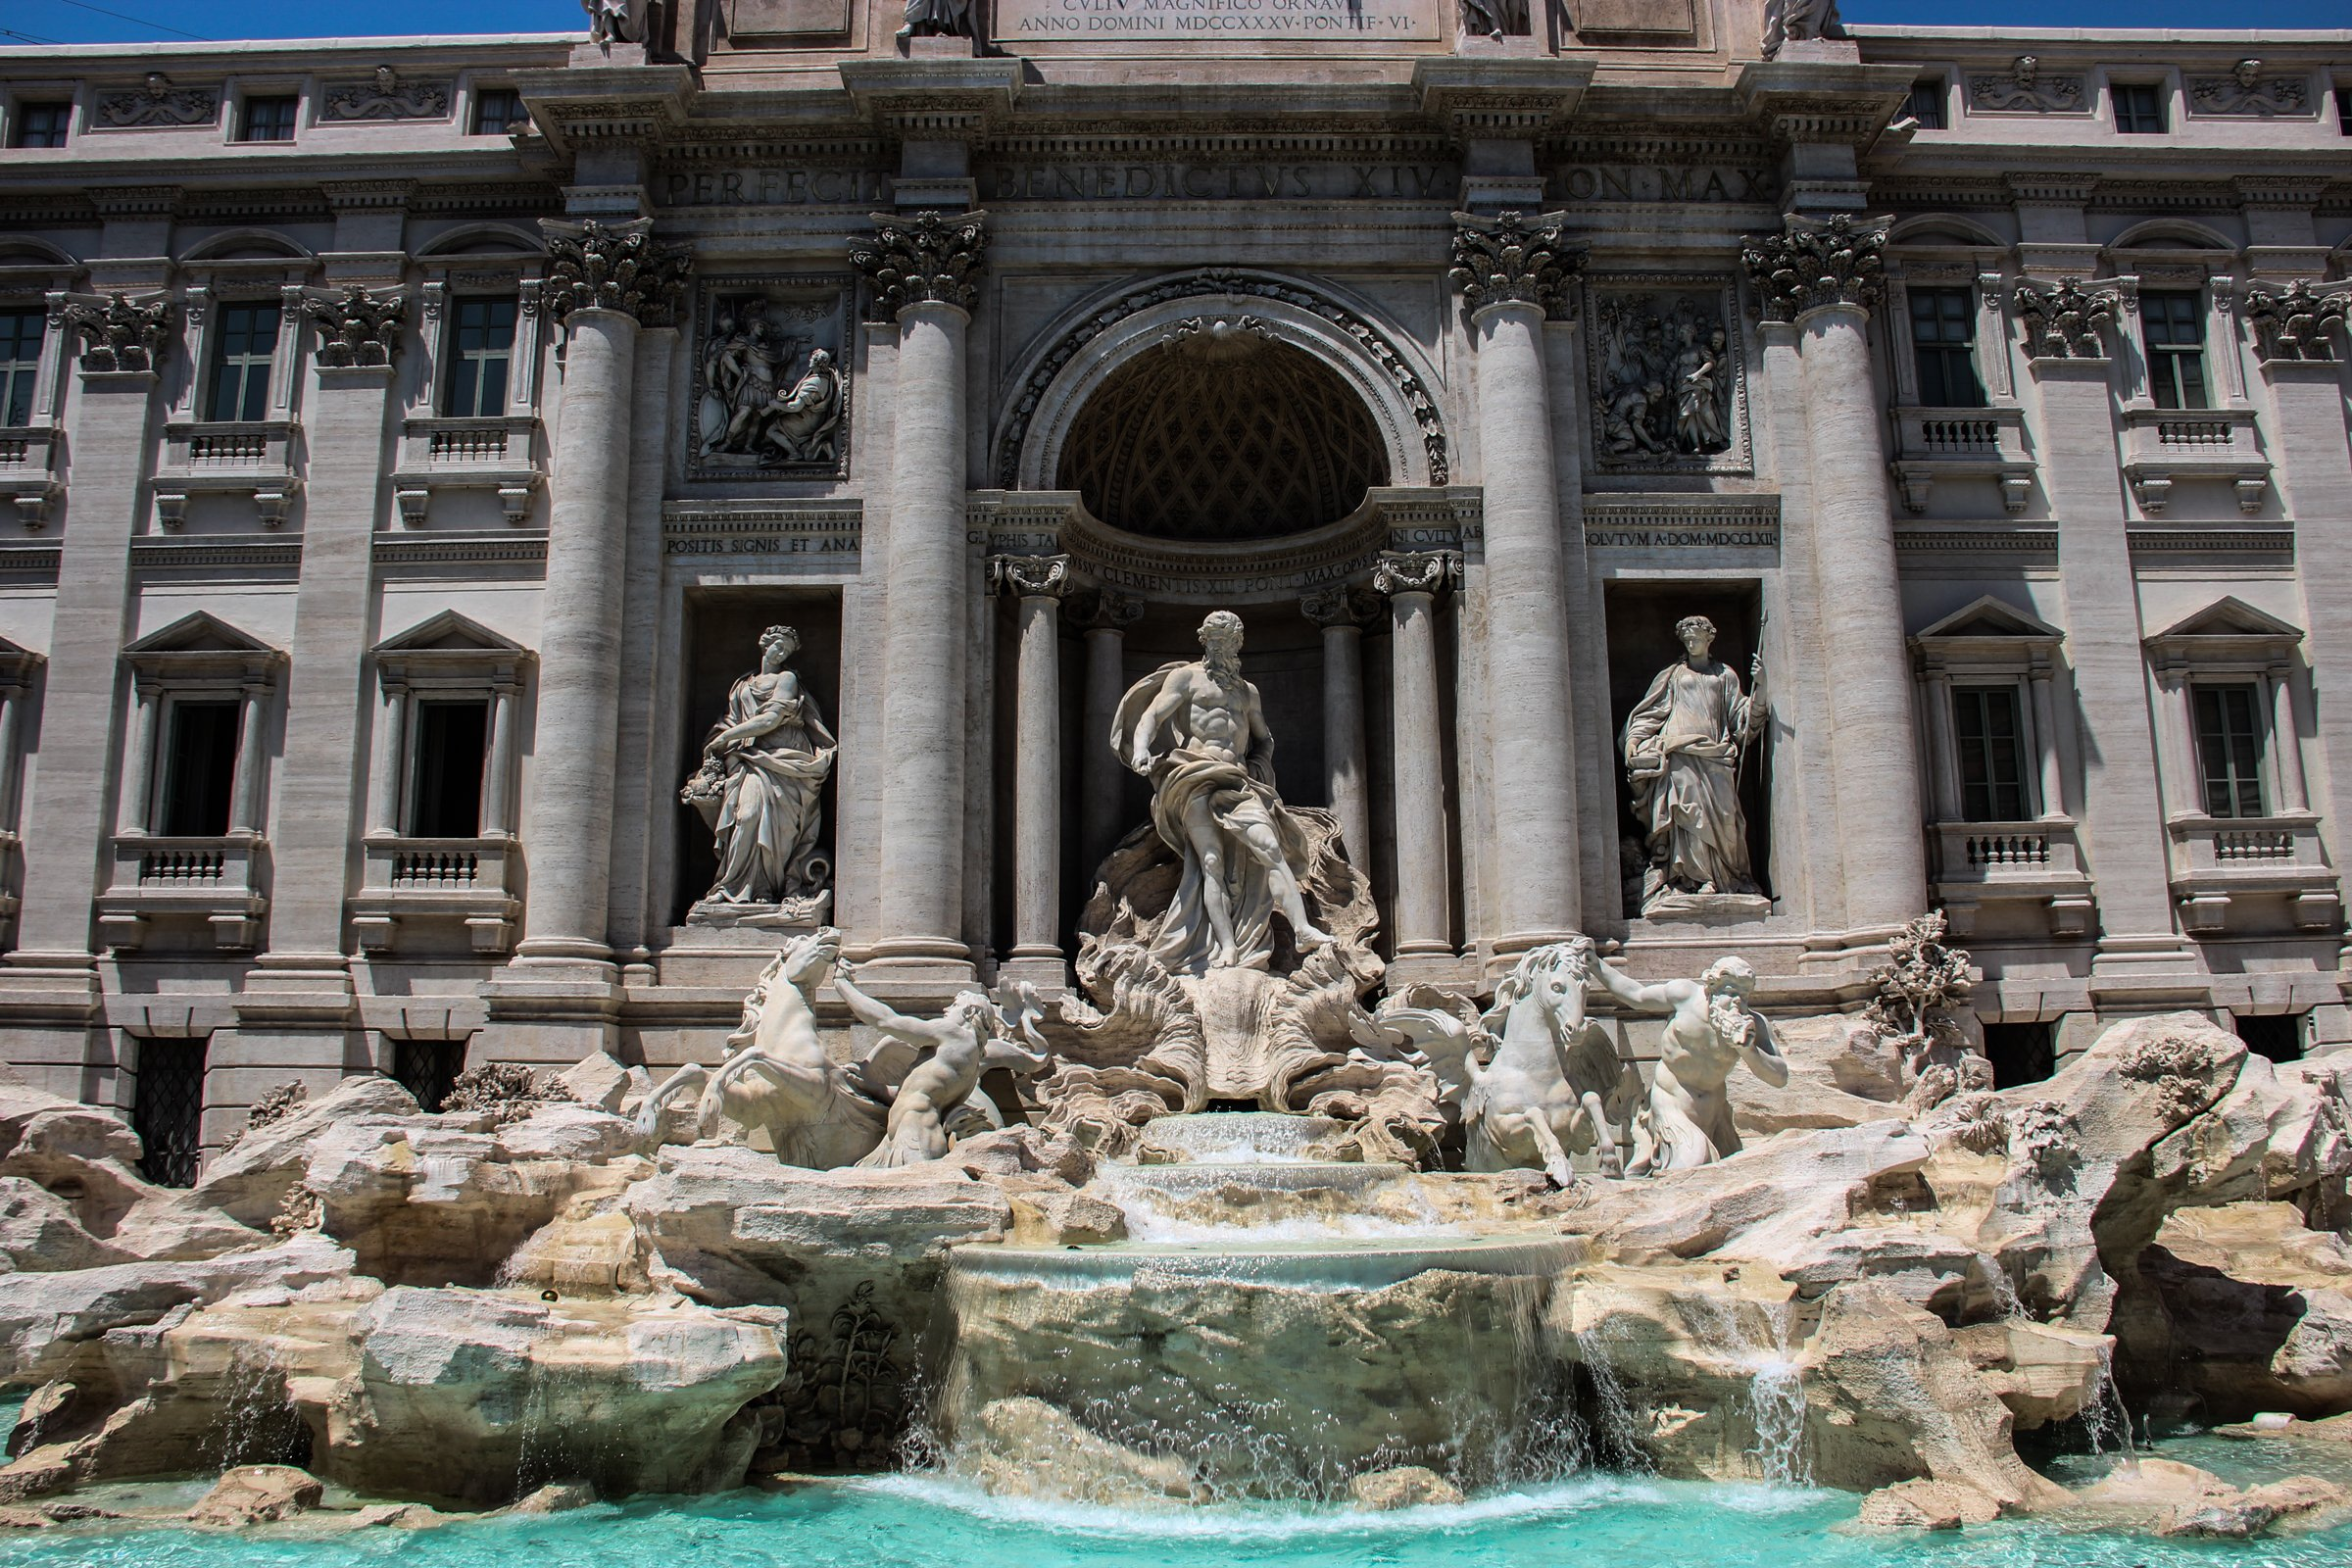 Statues at Trevi Fountain